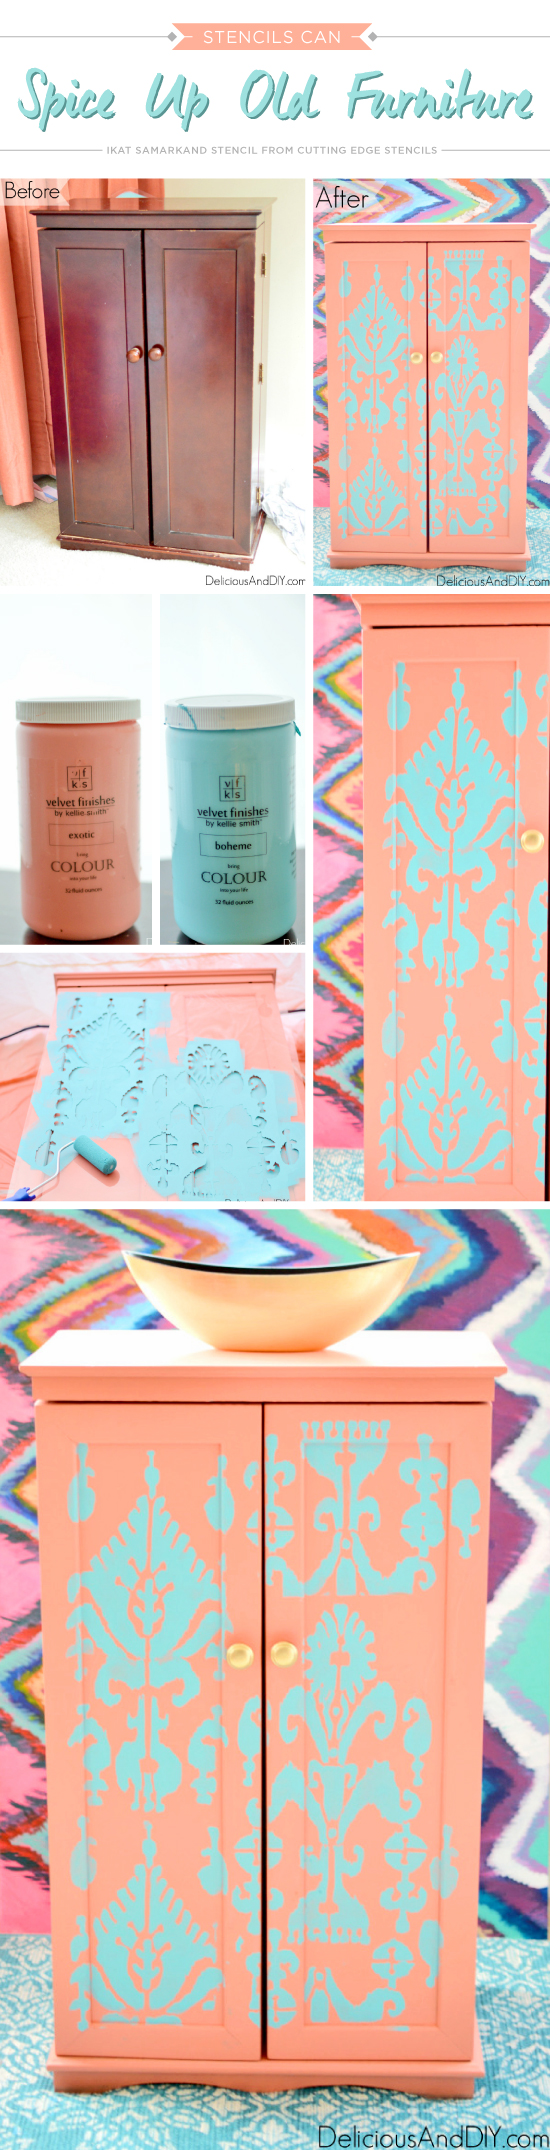 A DIY painted and stenciled cabinet using the Ikat Samarkand Allover Stencil from Cutting Edge Stencils. http://www.cuttingedgestencils.com/ikat-stencil-uzbek.html